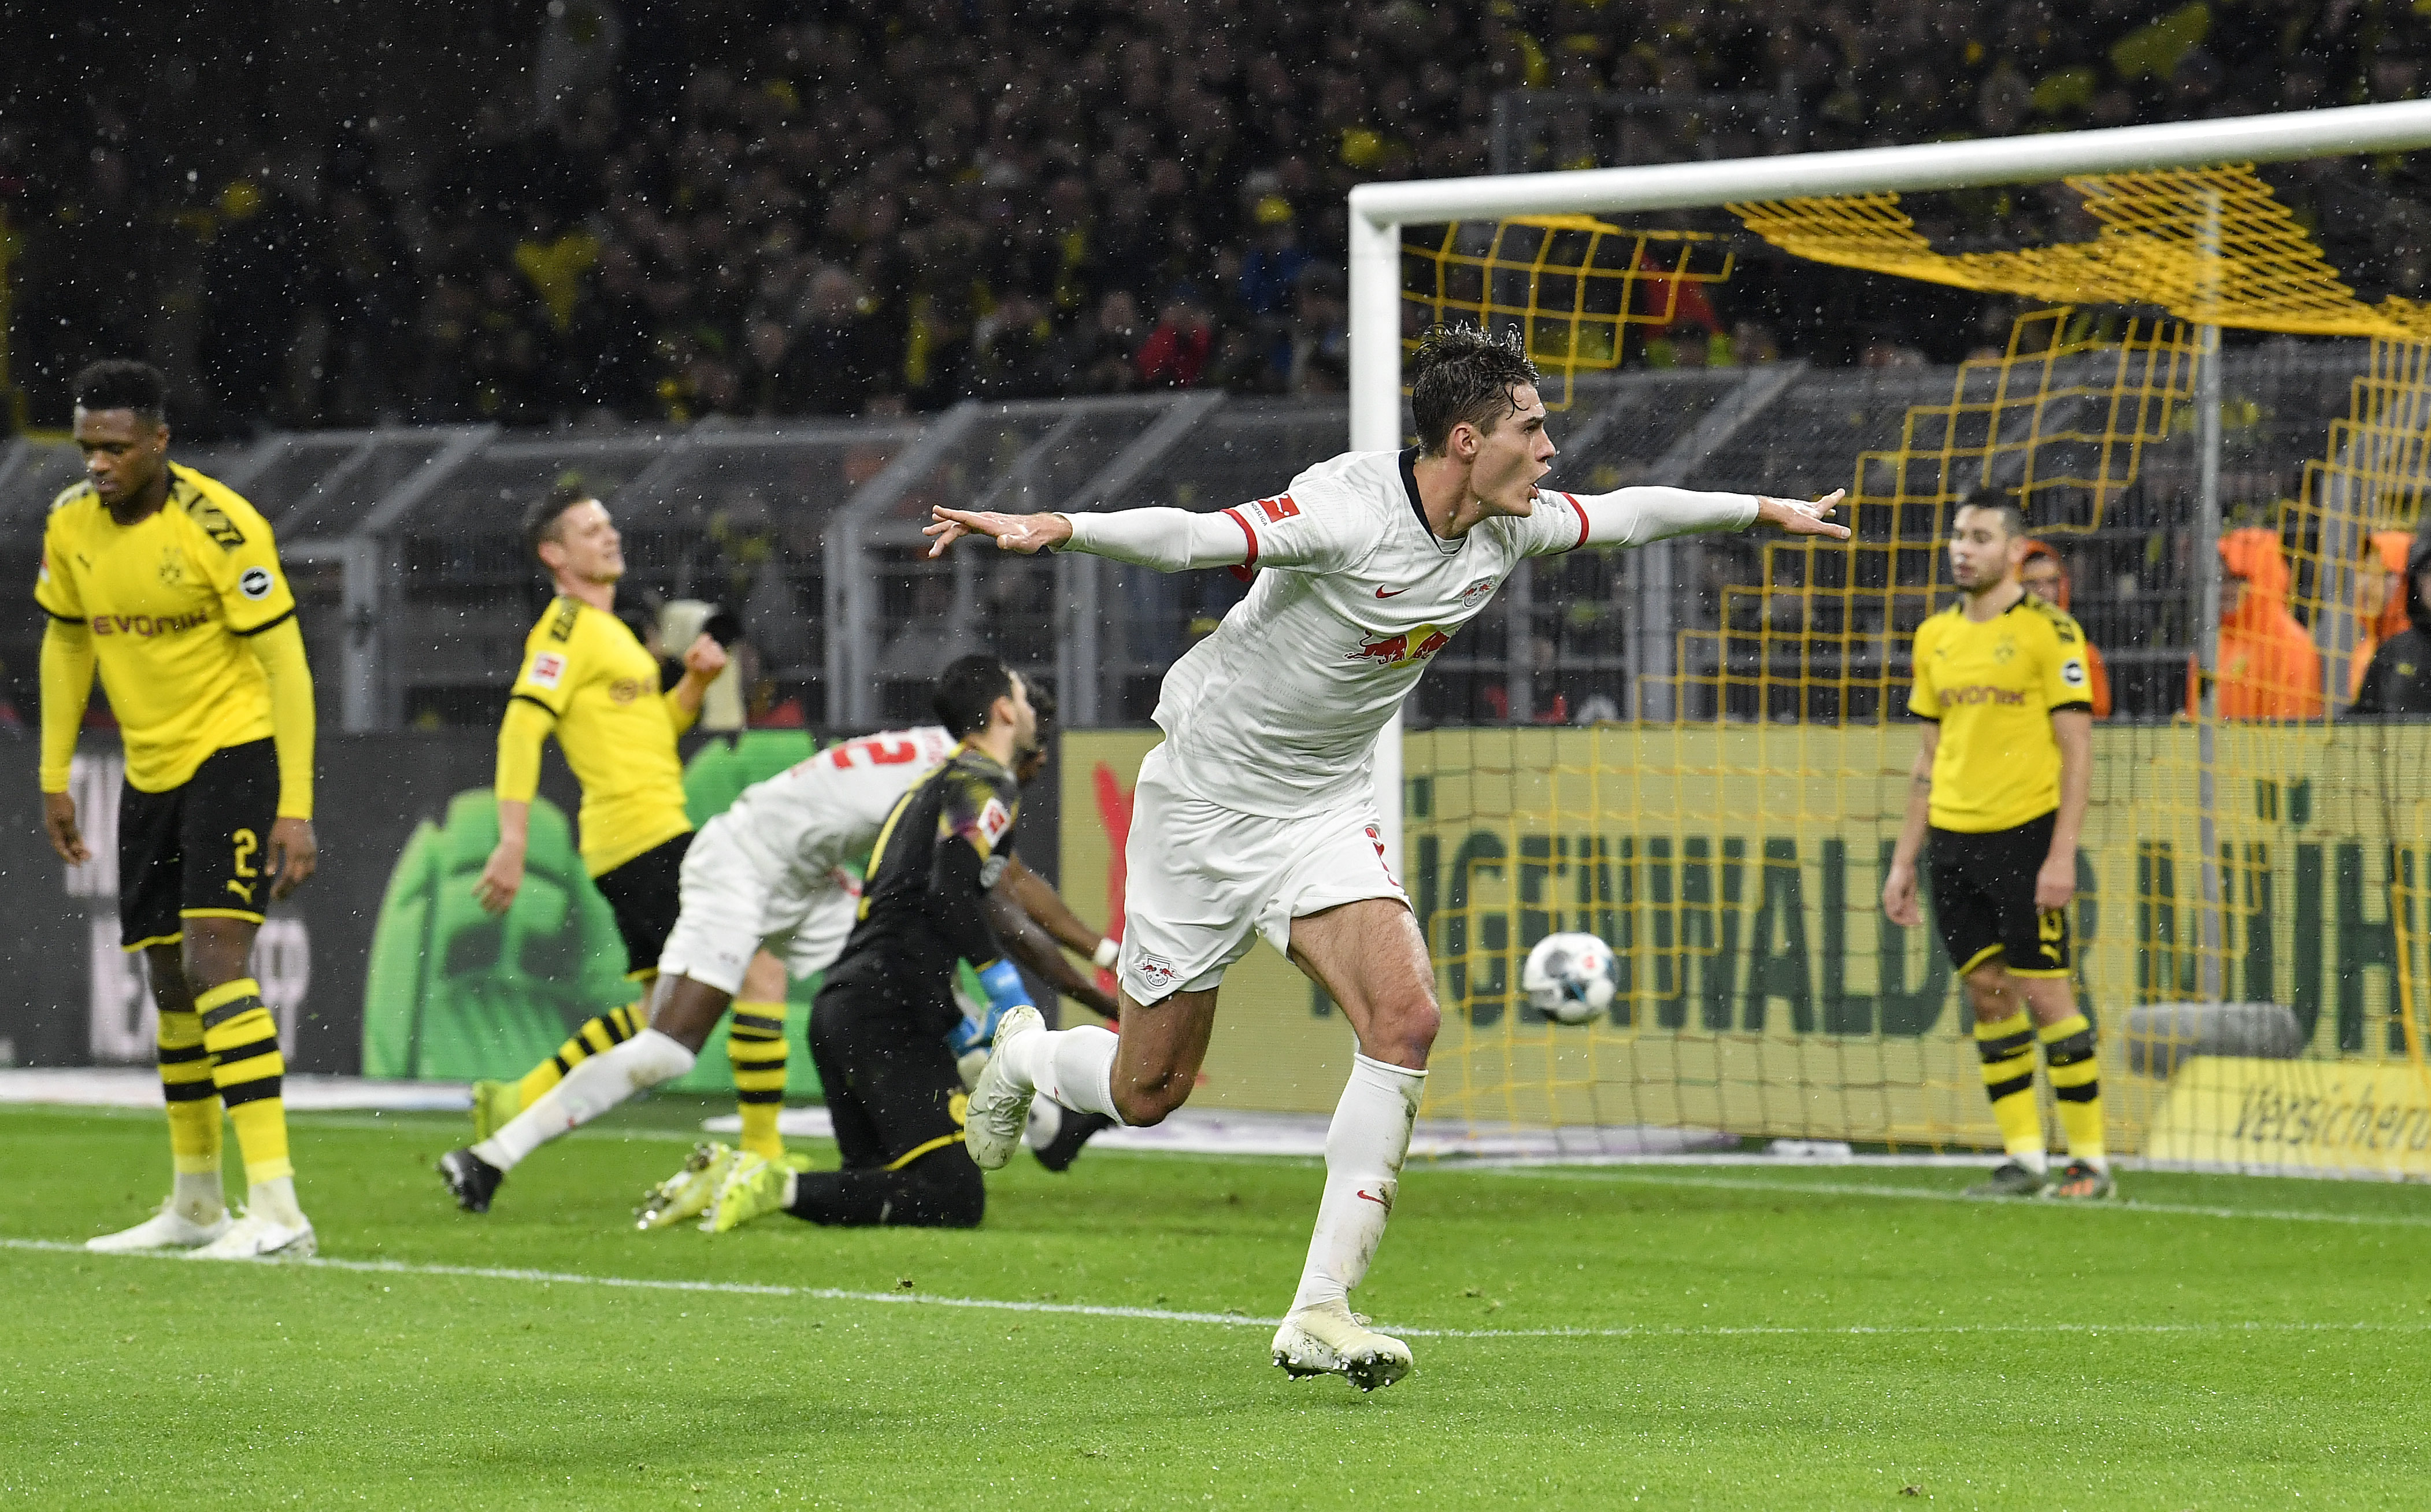 Dortmund's mistakes let Leipzig draw 3-3, consolidate lead